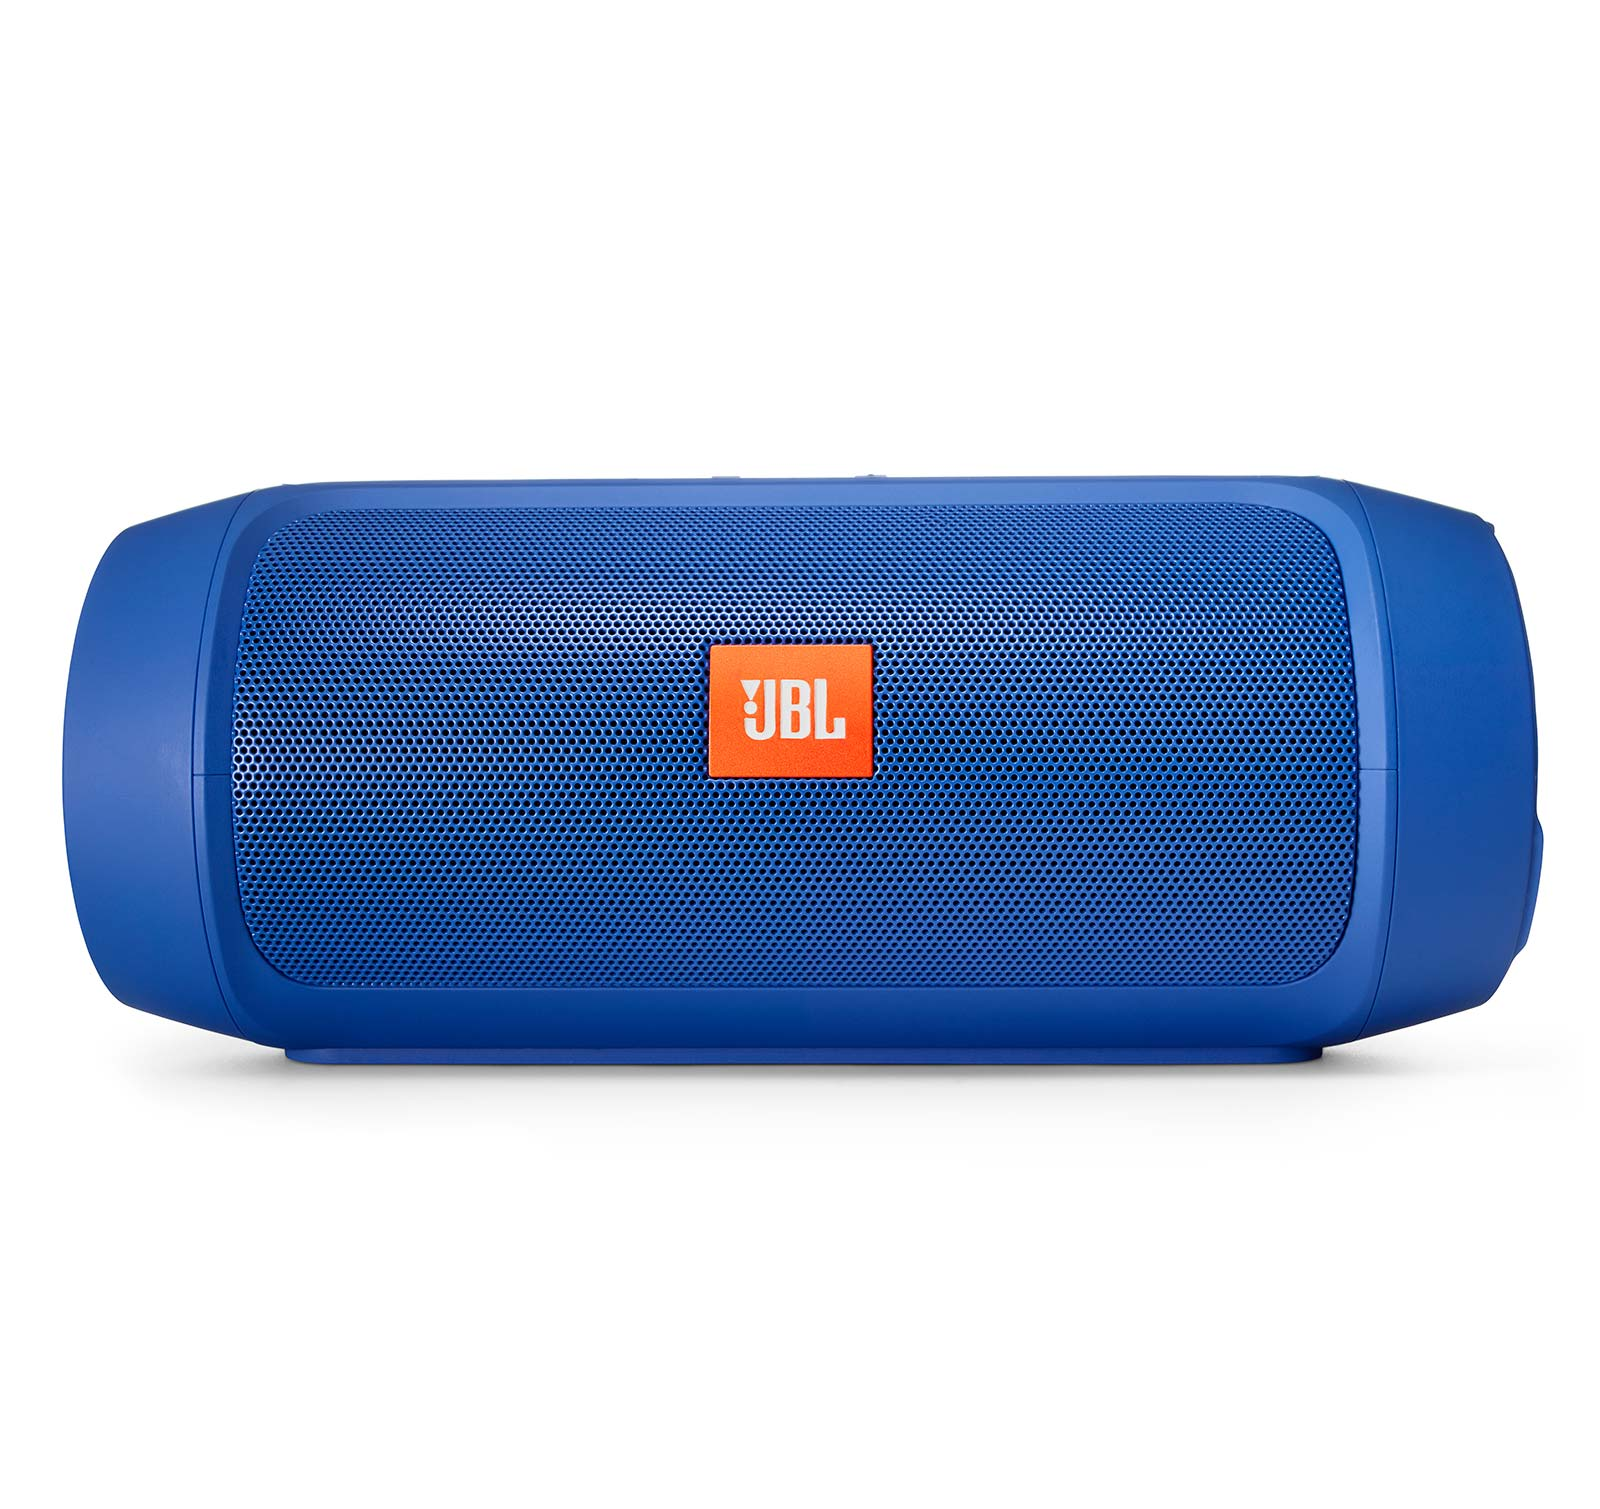 speakers in walmart. jbl charge 2 plus blue splashproof portable bluetooth speaker - walmart.com speakers in walmart